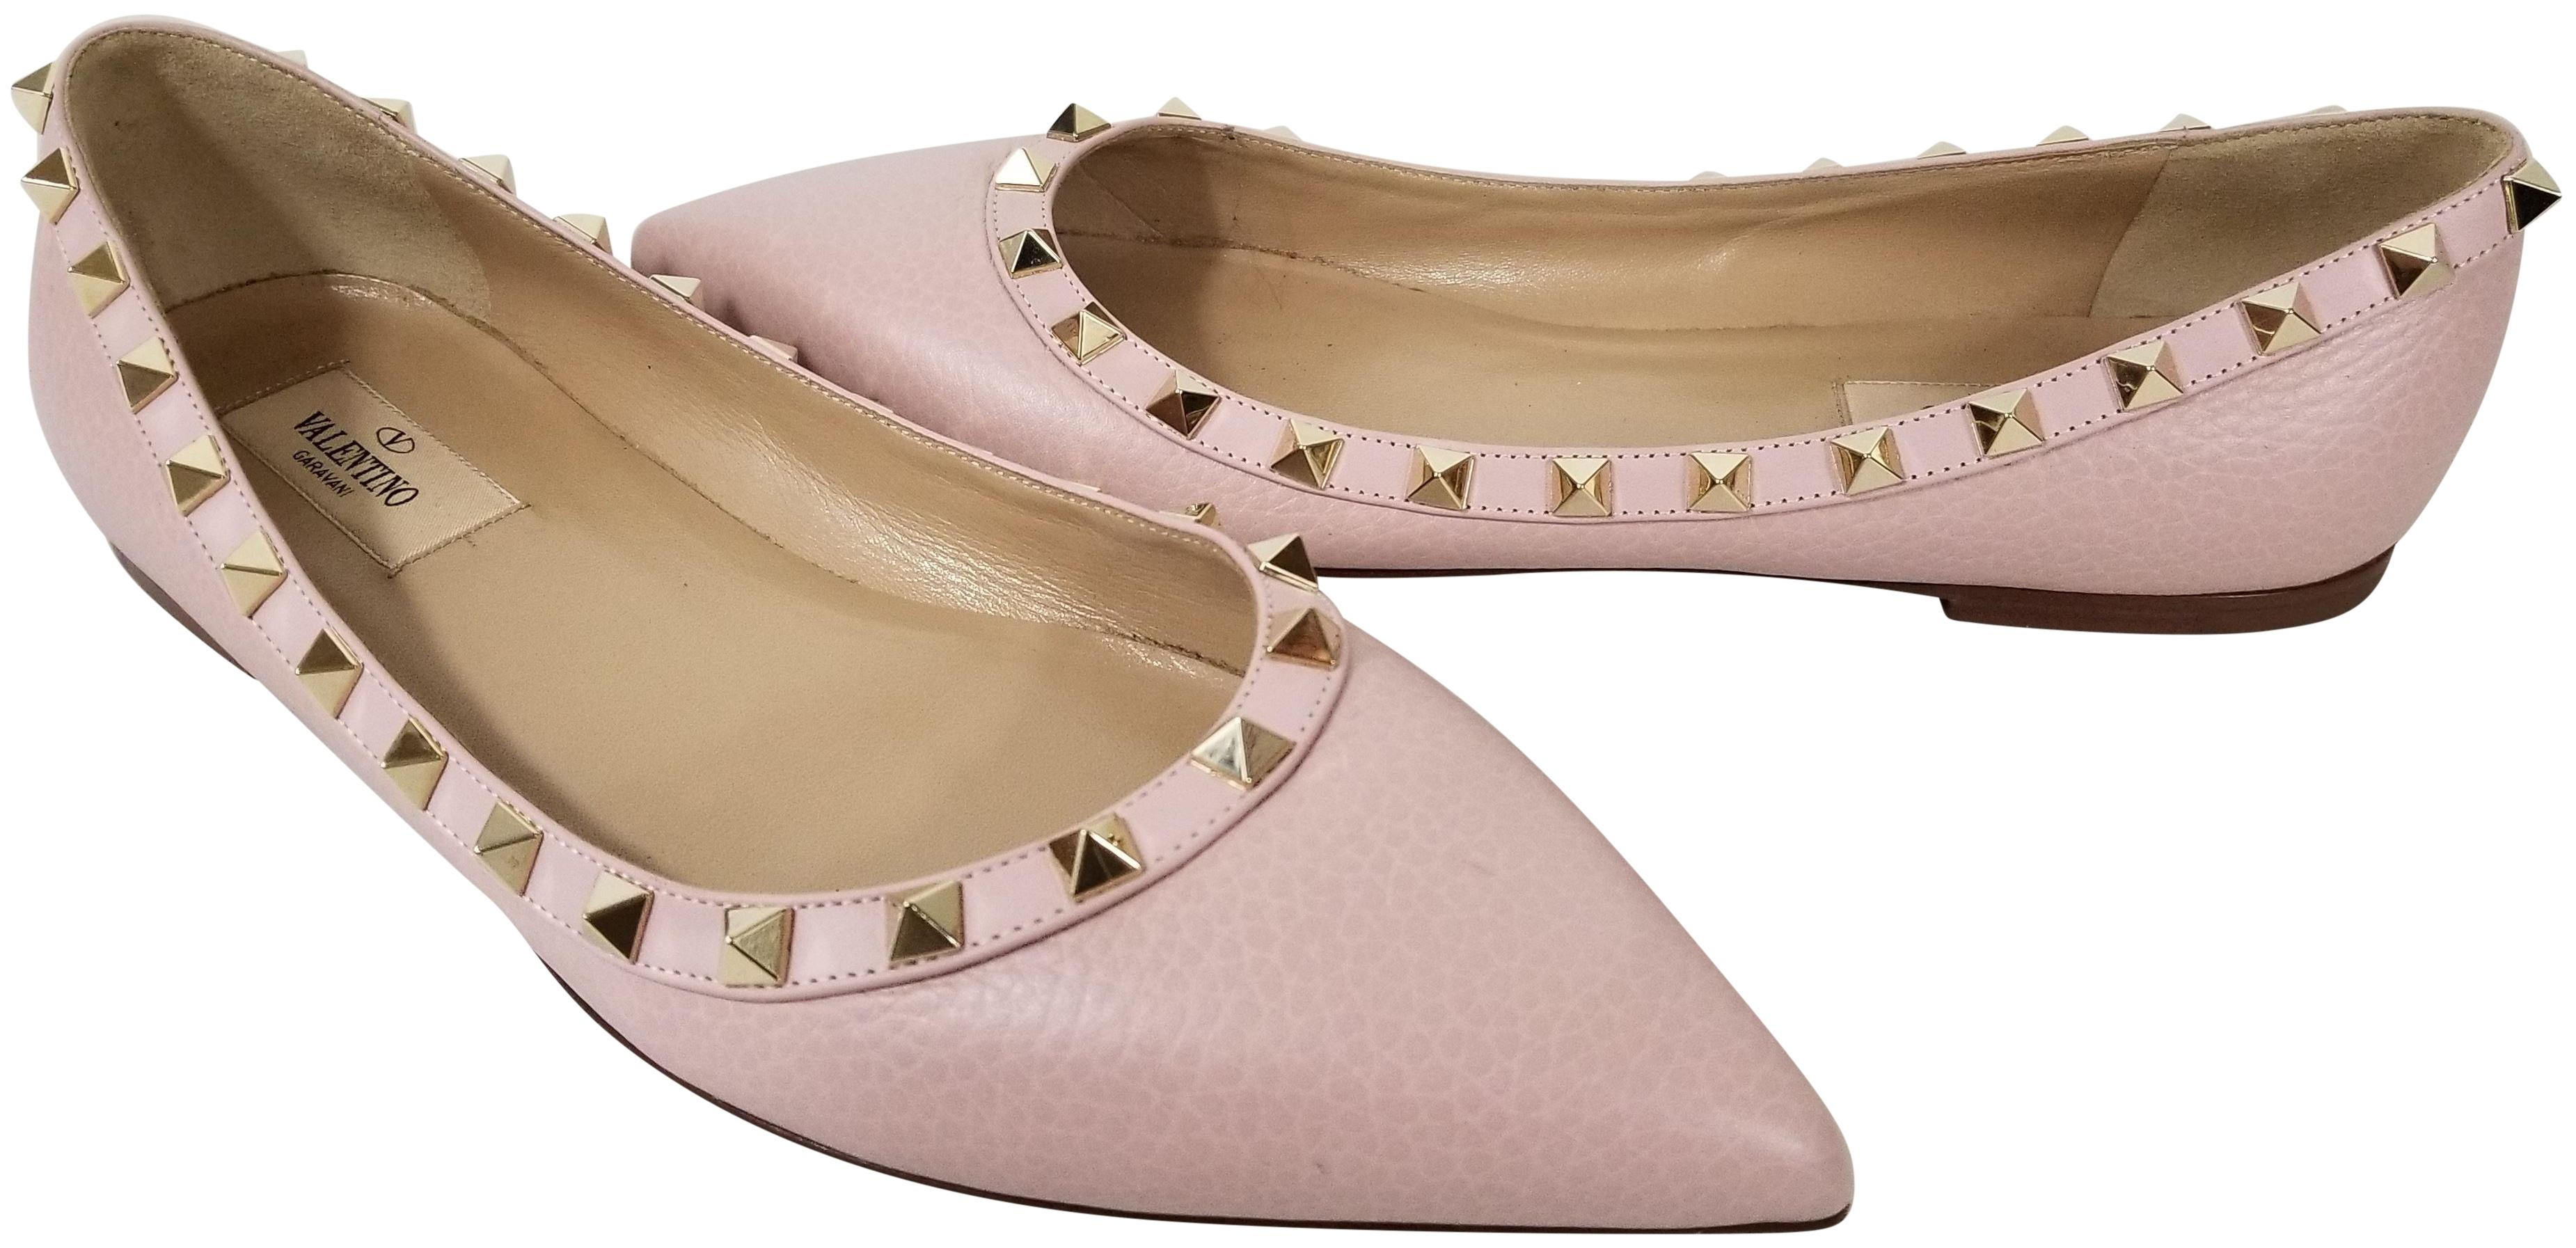 VALENTINO Rockstud leather ballet shoes Bone - A9775